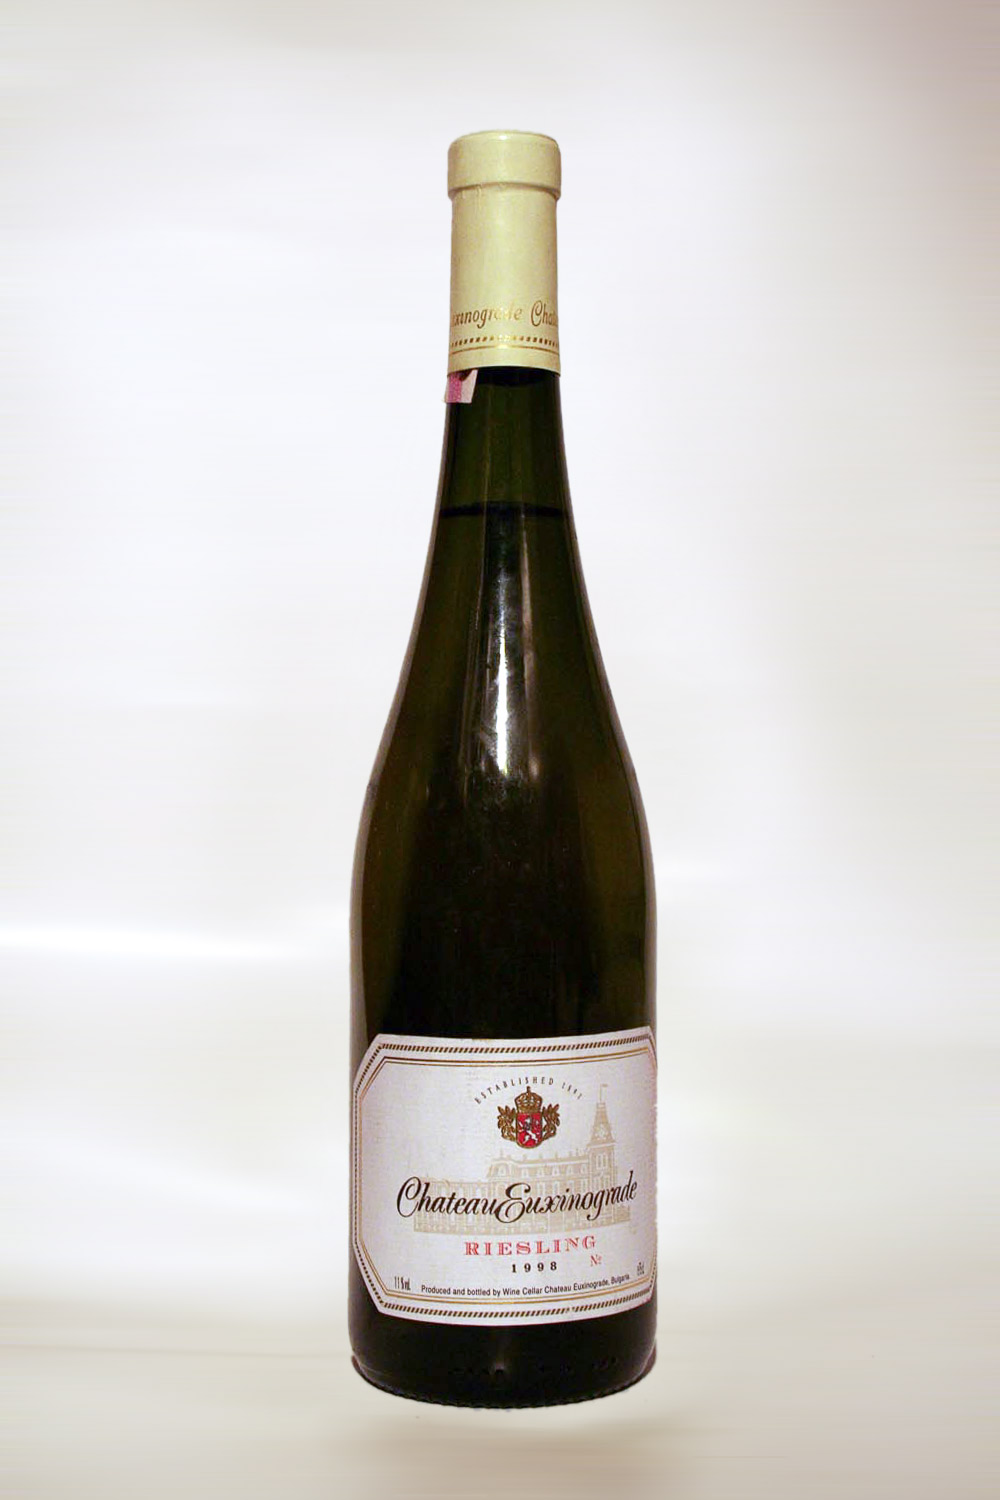 Chateau Euxinograde Riesling 1998